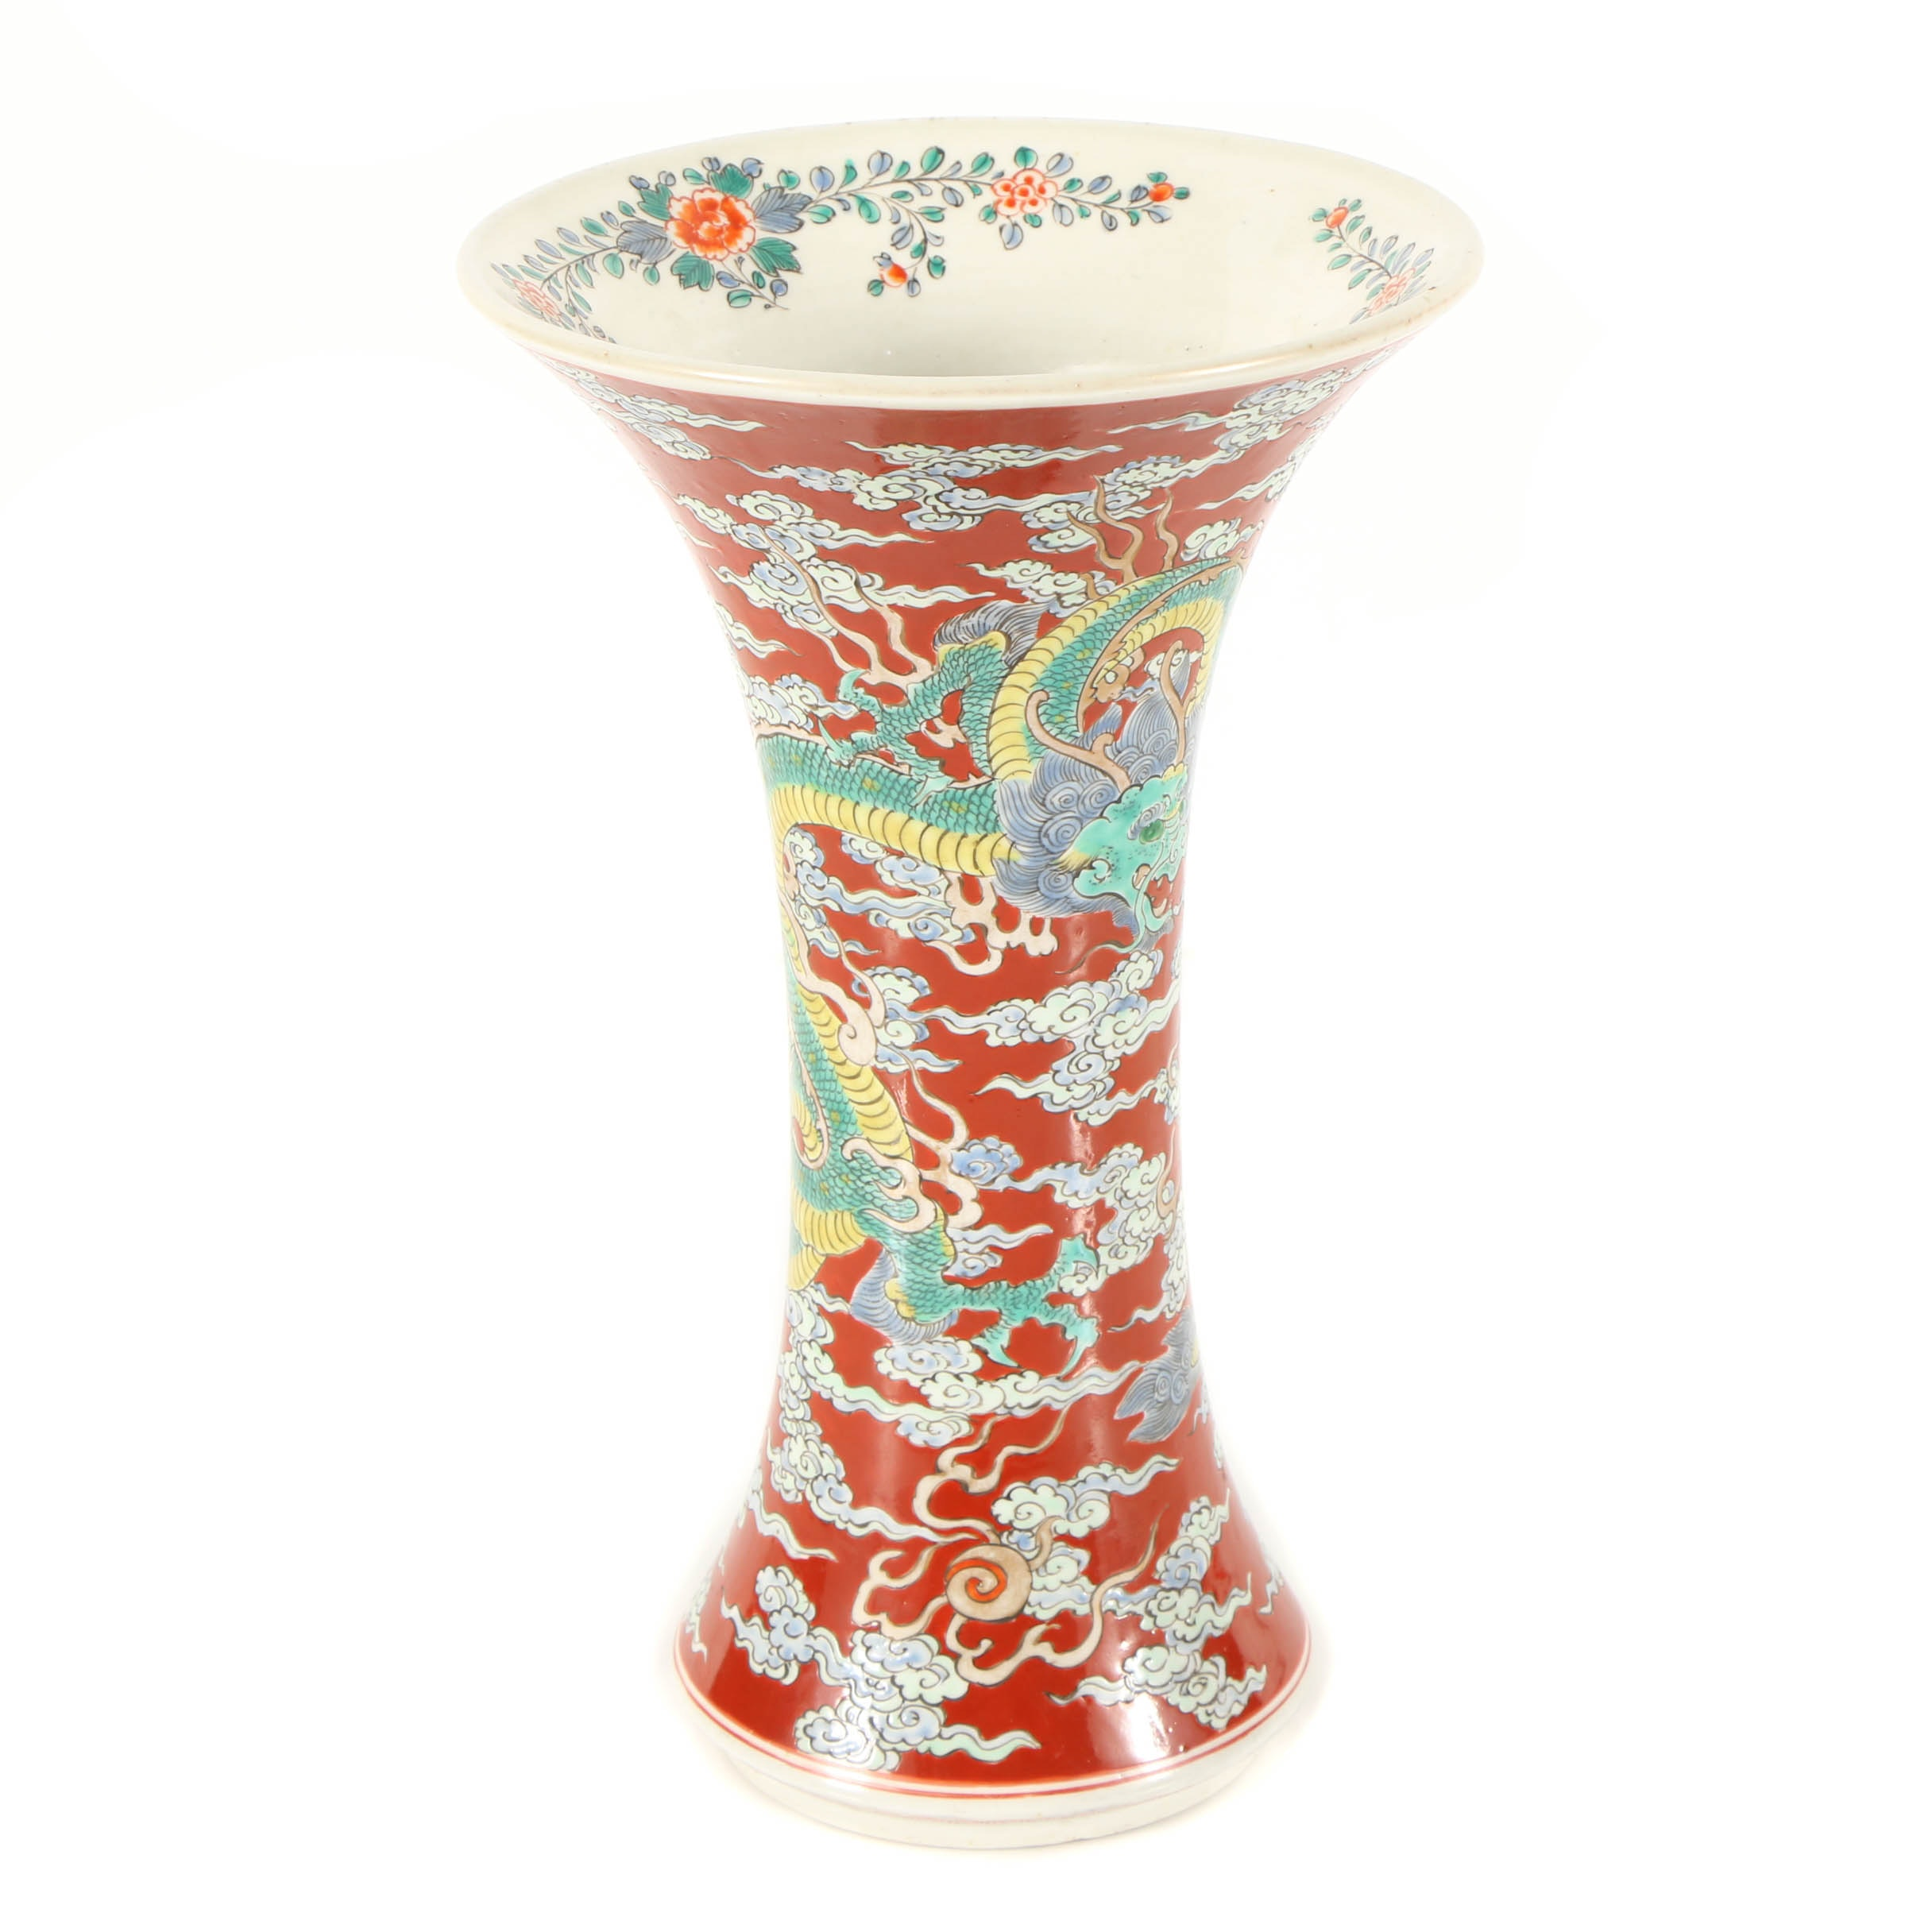 Japanese Vase with Dragon Motif